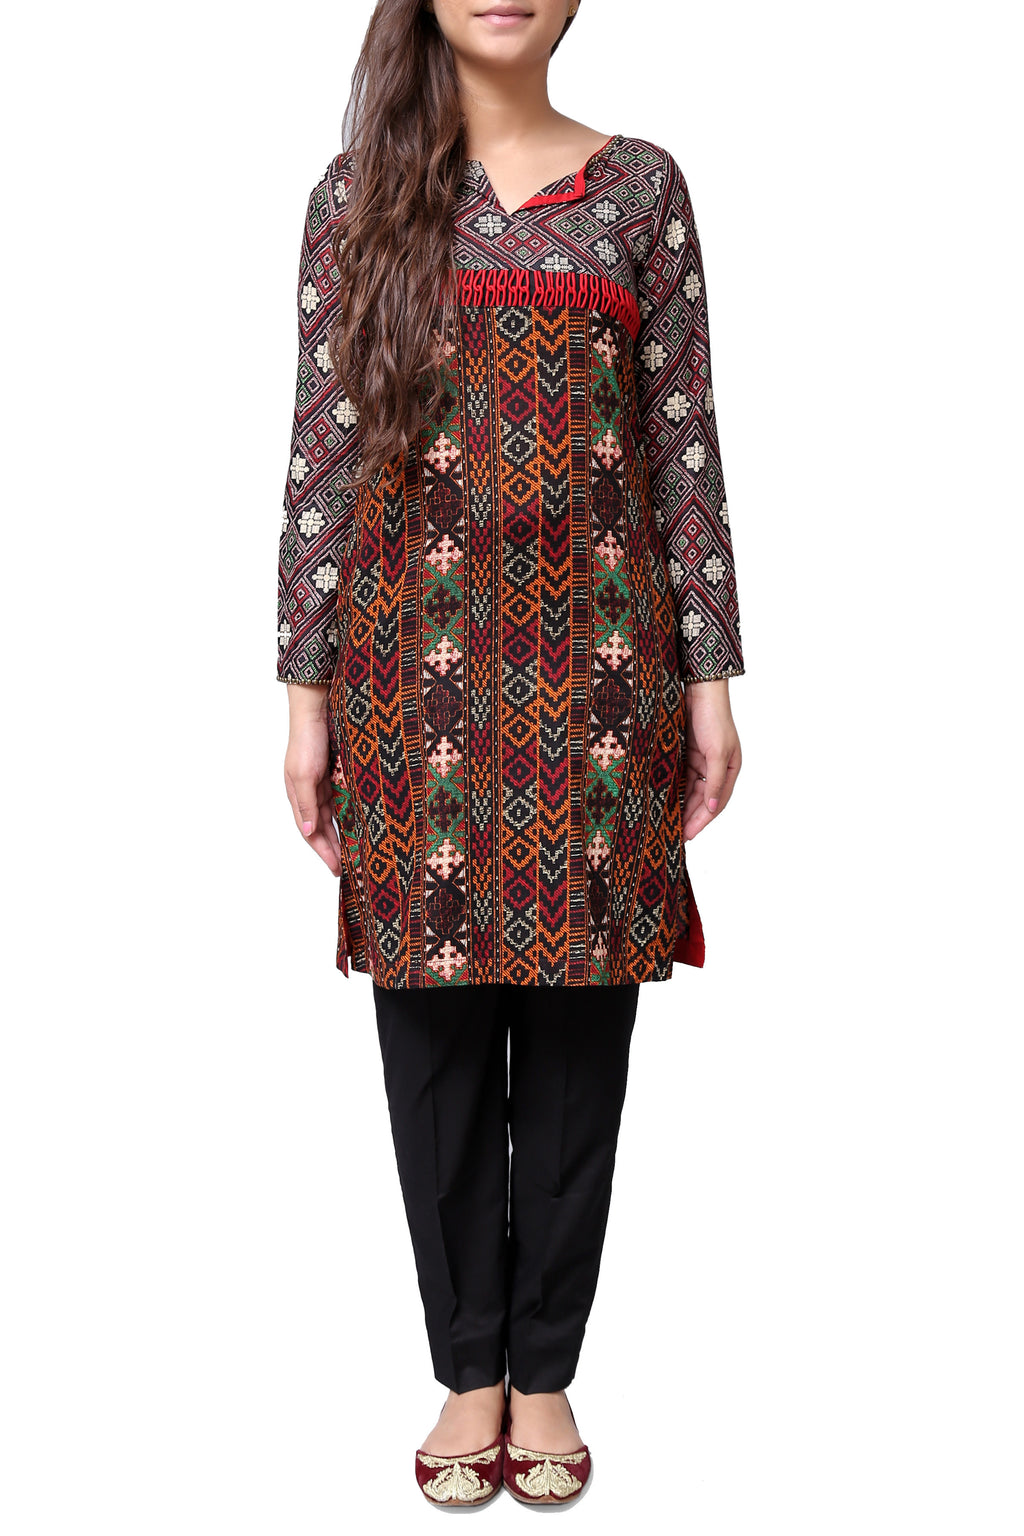 Generation - Black Printed Fitted Voile Kameez